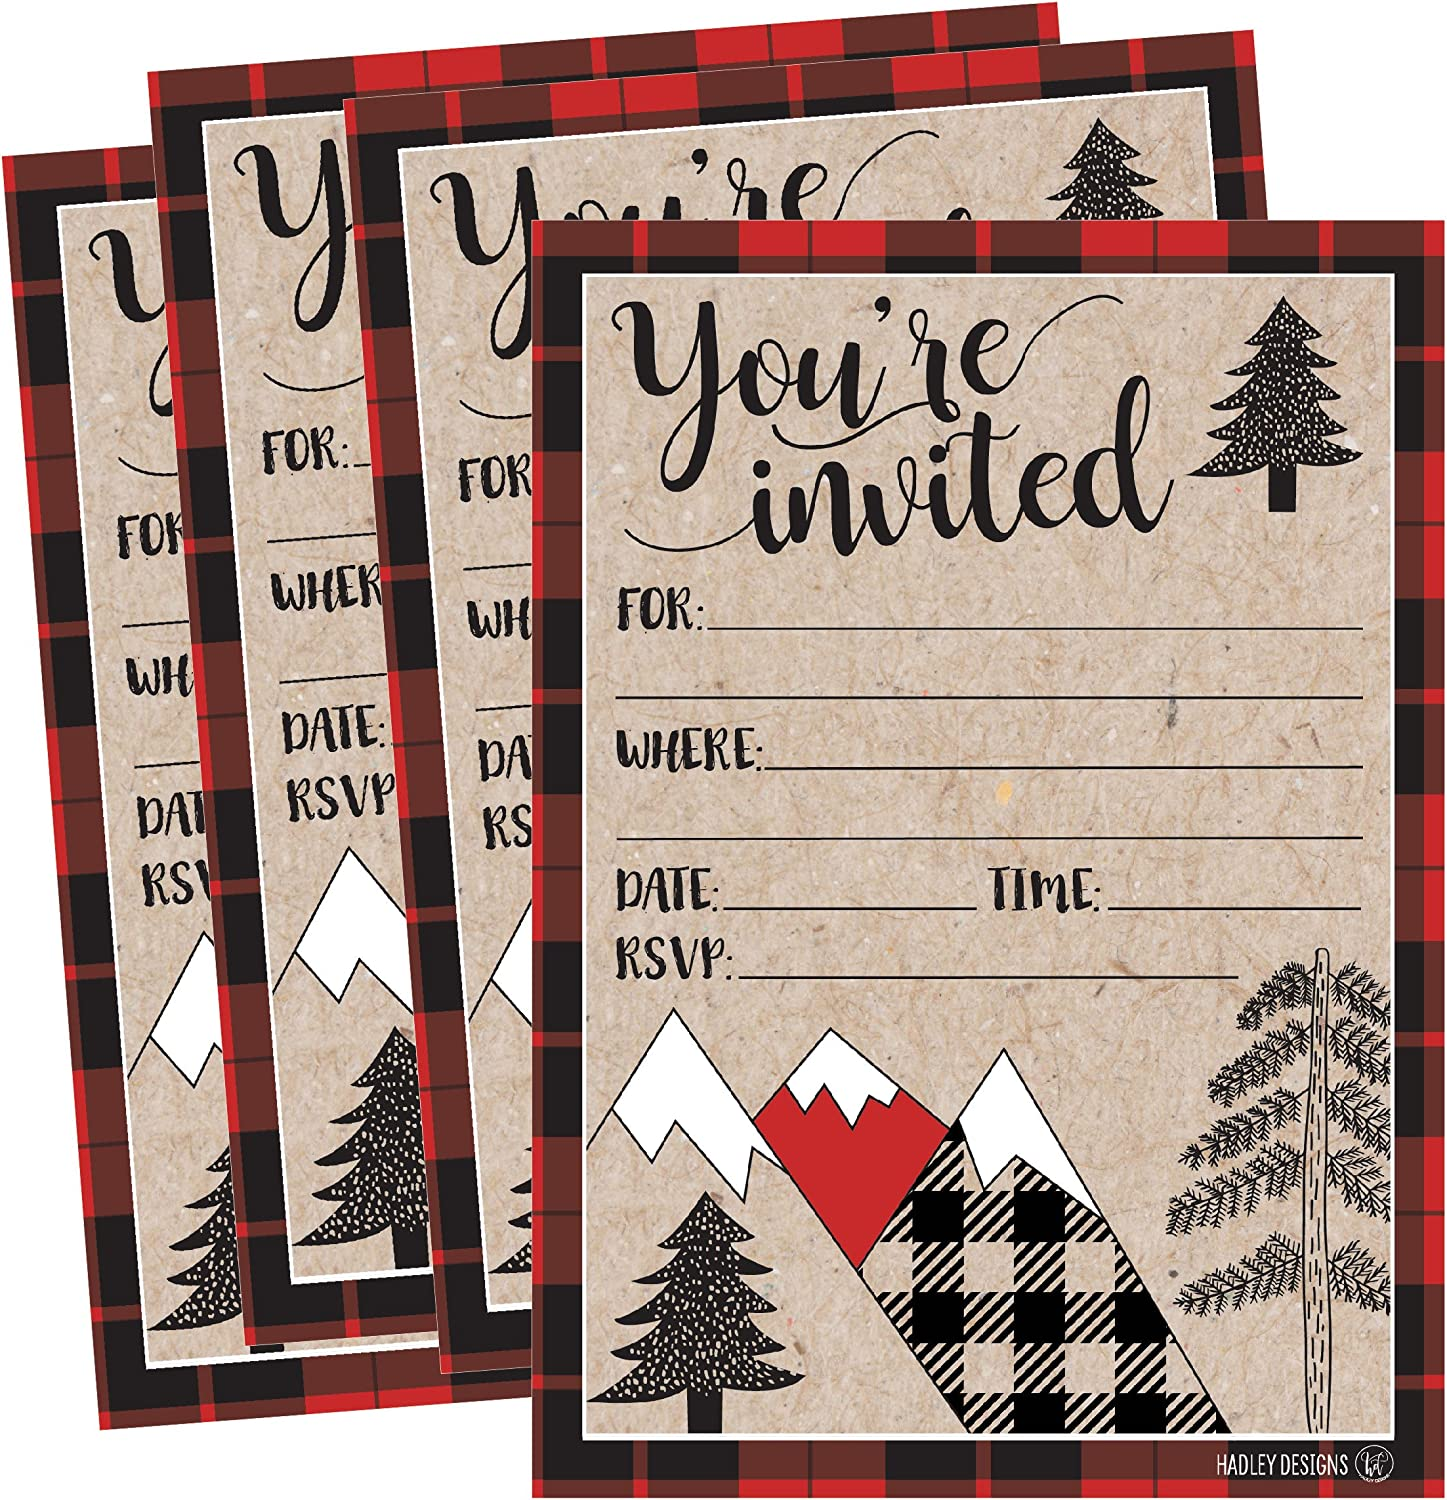 25 Plaid Woodland Holiday Invitations, Rustic Kraft Christmas Winter New Years Xmas Dinner Party Invite, Mountain Adult Kid Birthday Festive Event Themed Card, Forest Baby Bridal Shower Idea Supplies